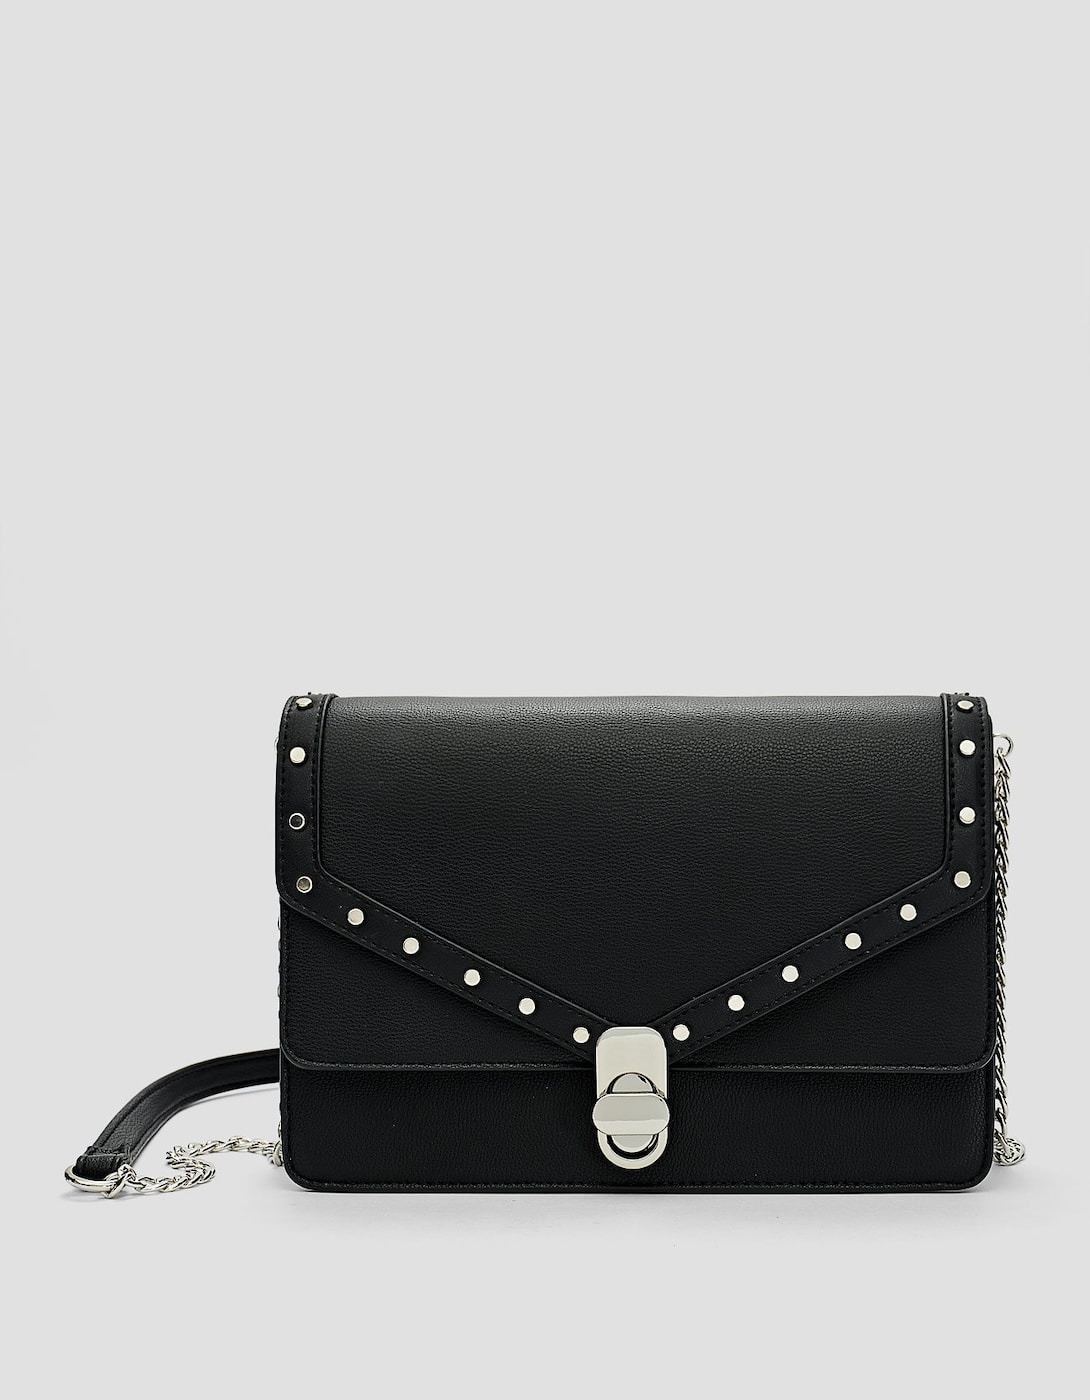 Chain And Backpacks With Crossbody Clasp Bags Bag Strap qfwHSRw